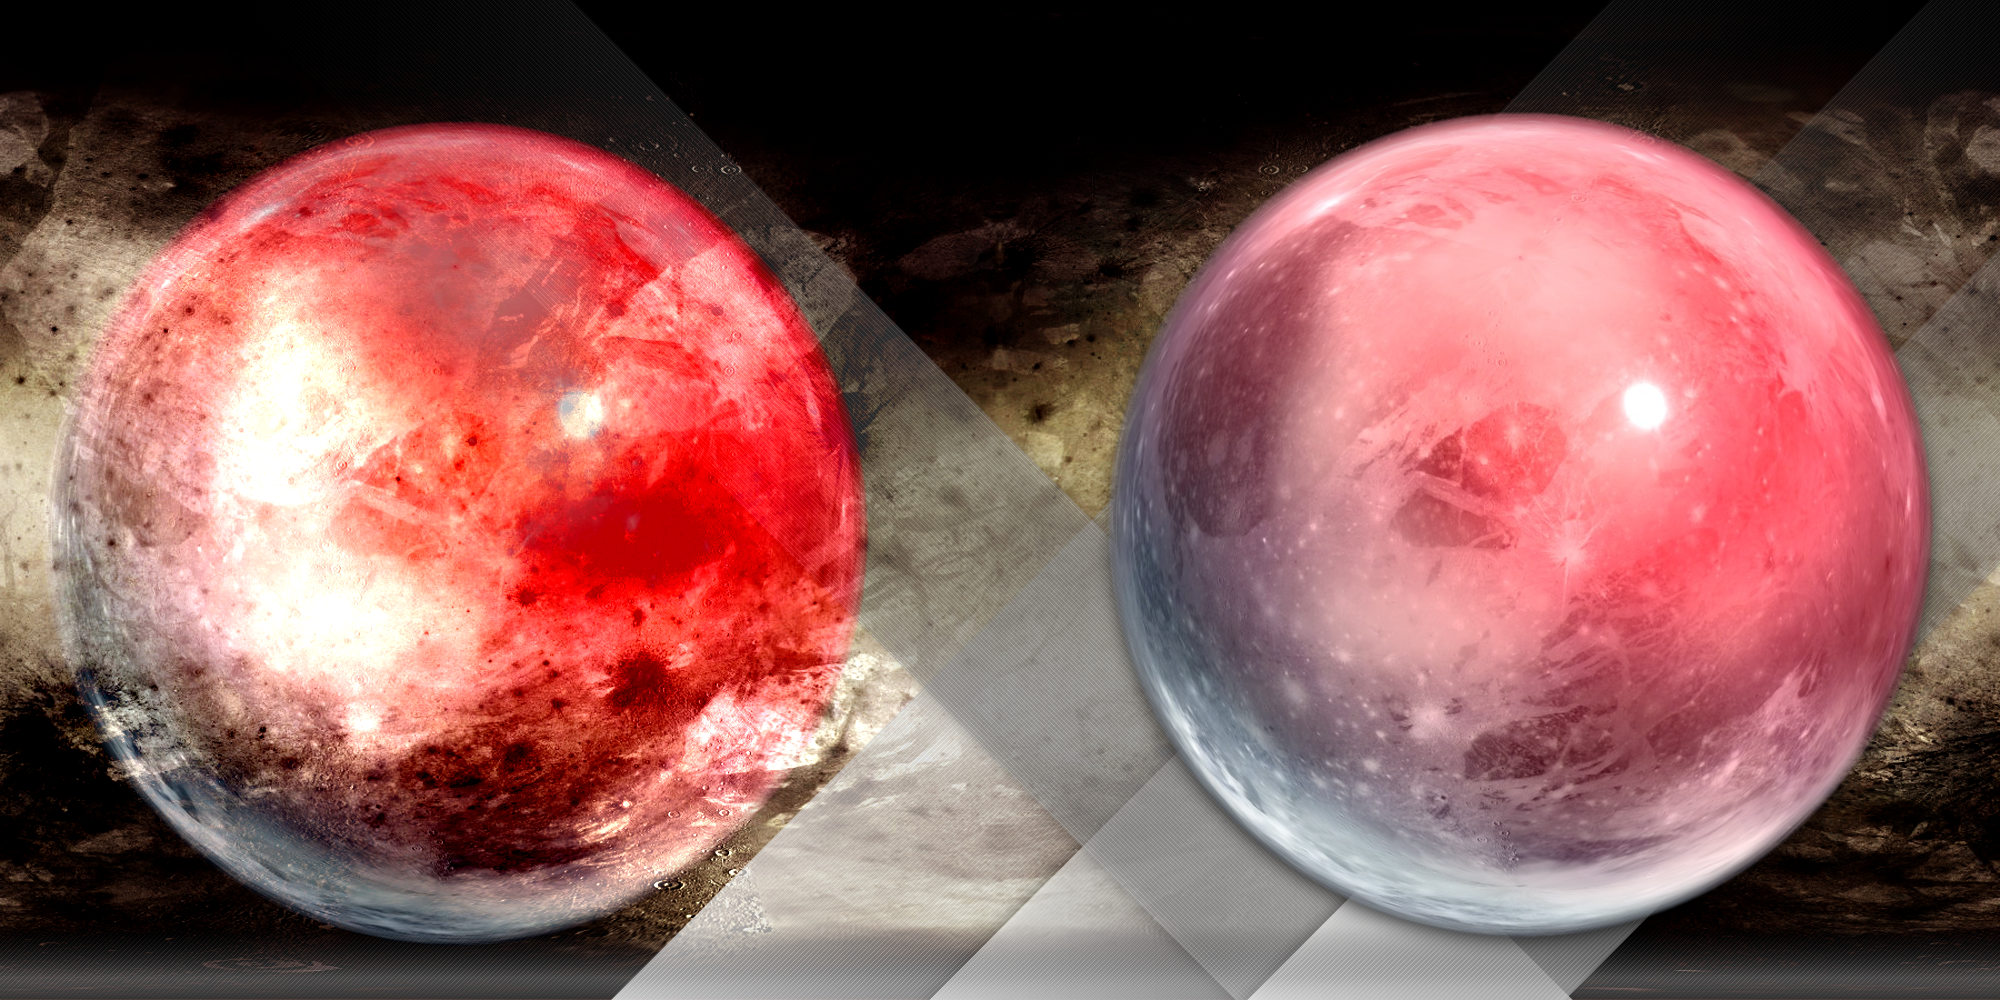 Opposite Planets